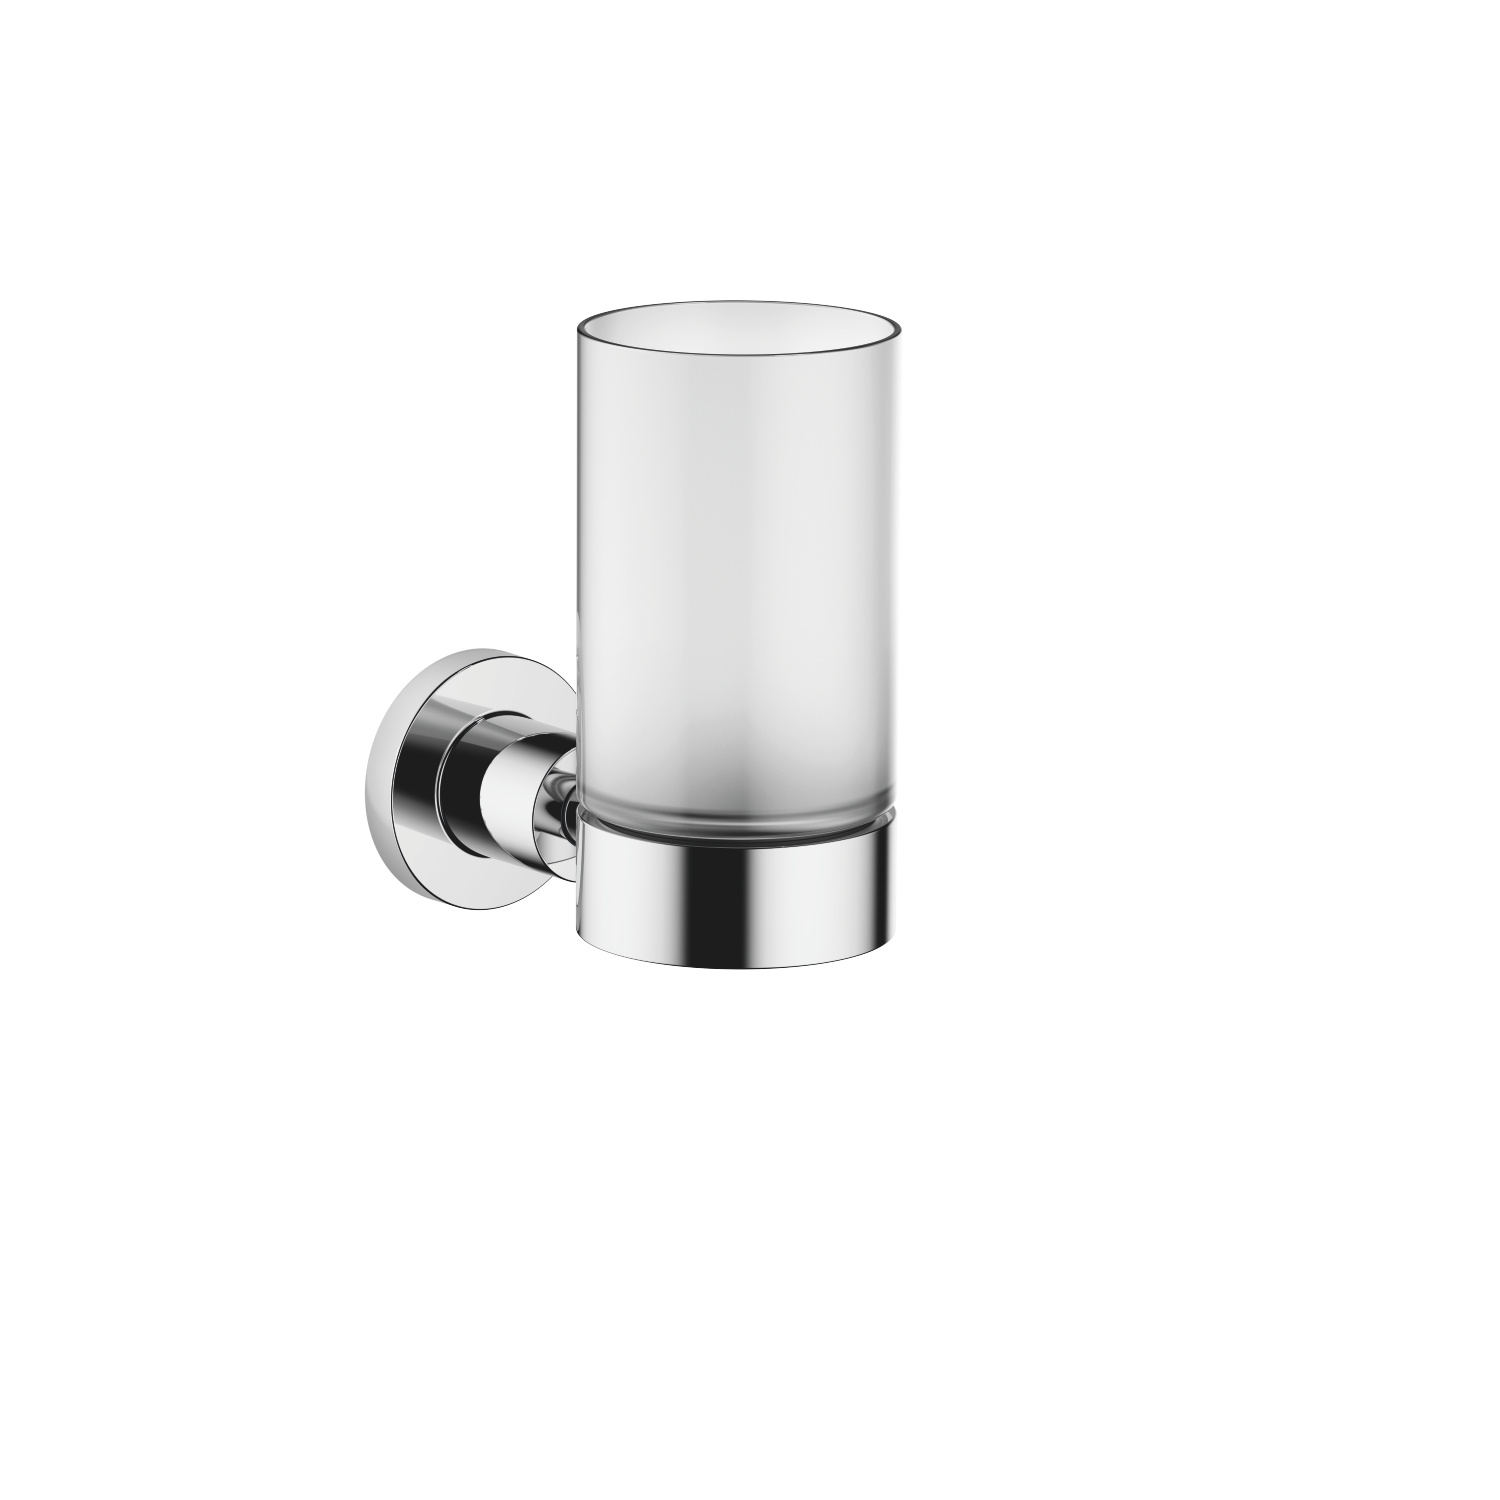 Tumbler holder wall model - polished chrome